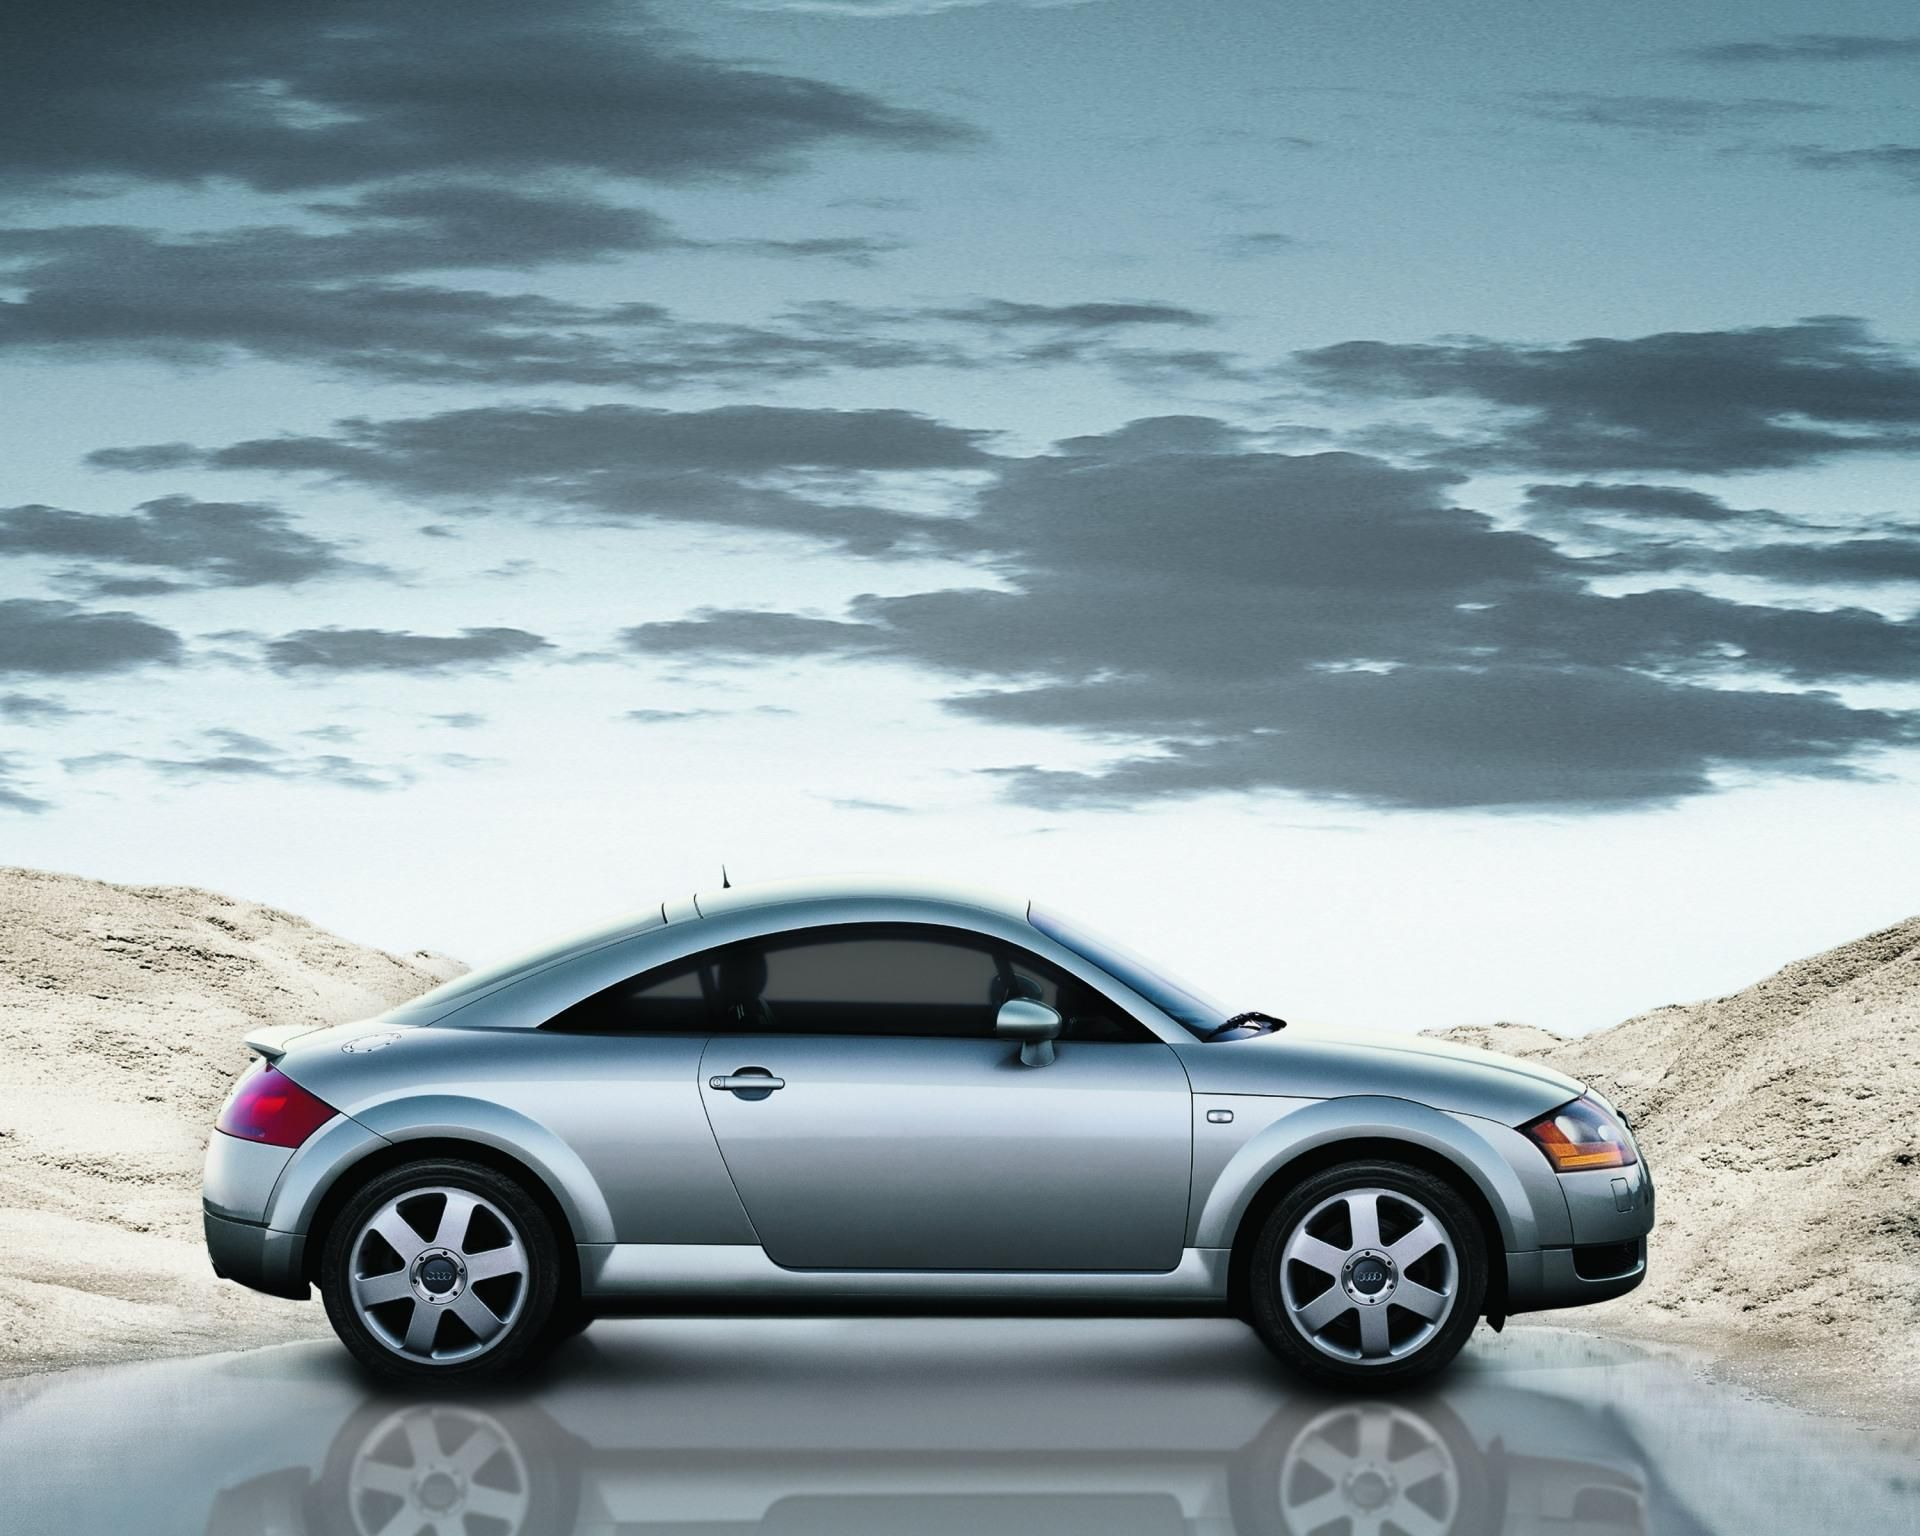 2002 Audi TT Coupe Roadster